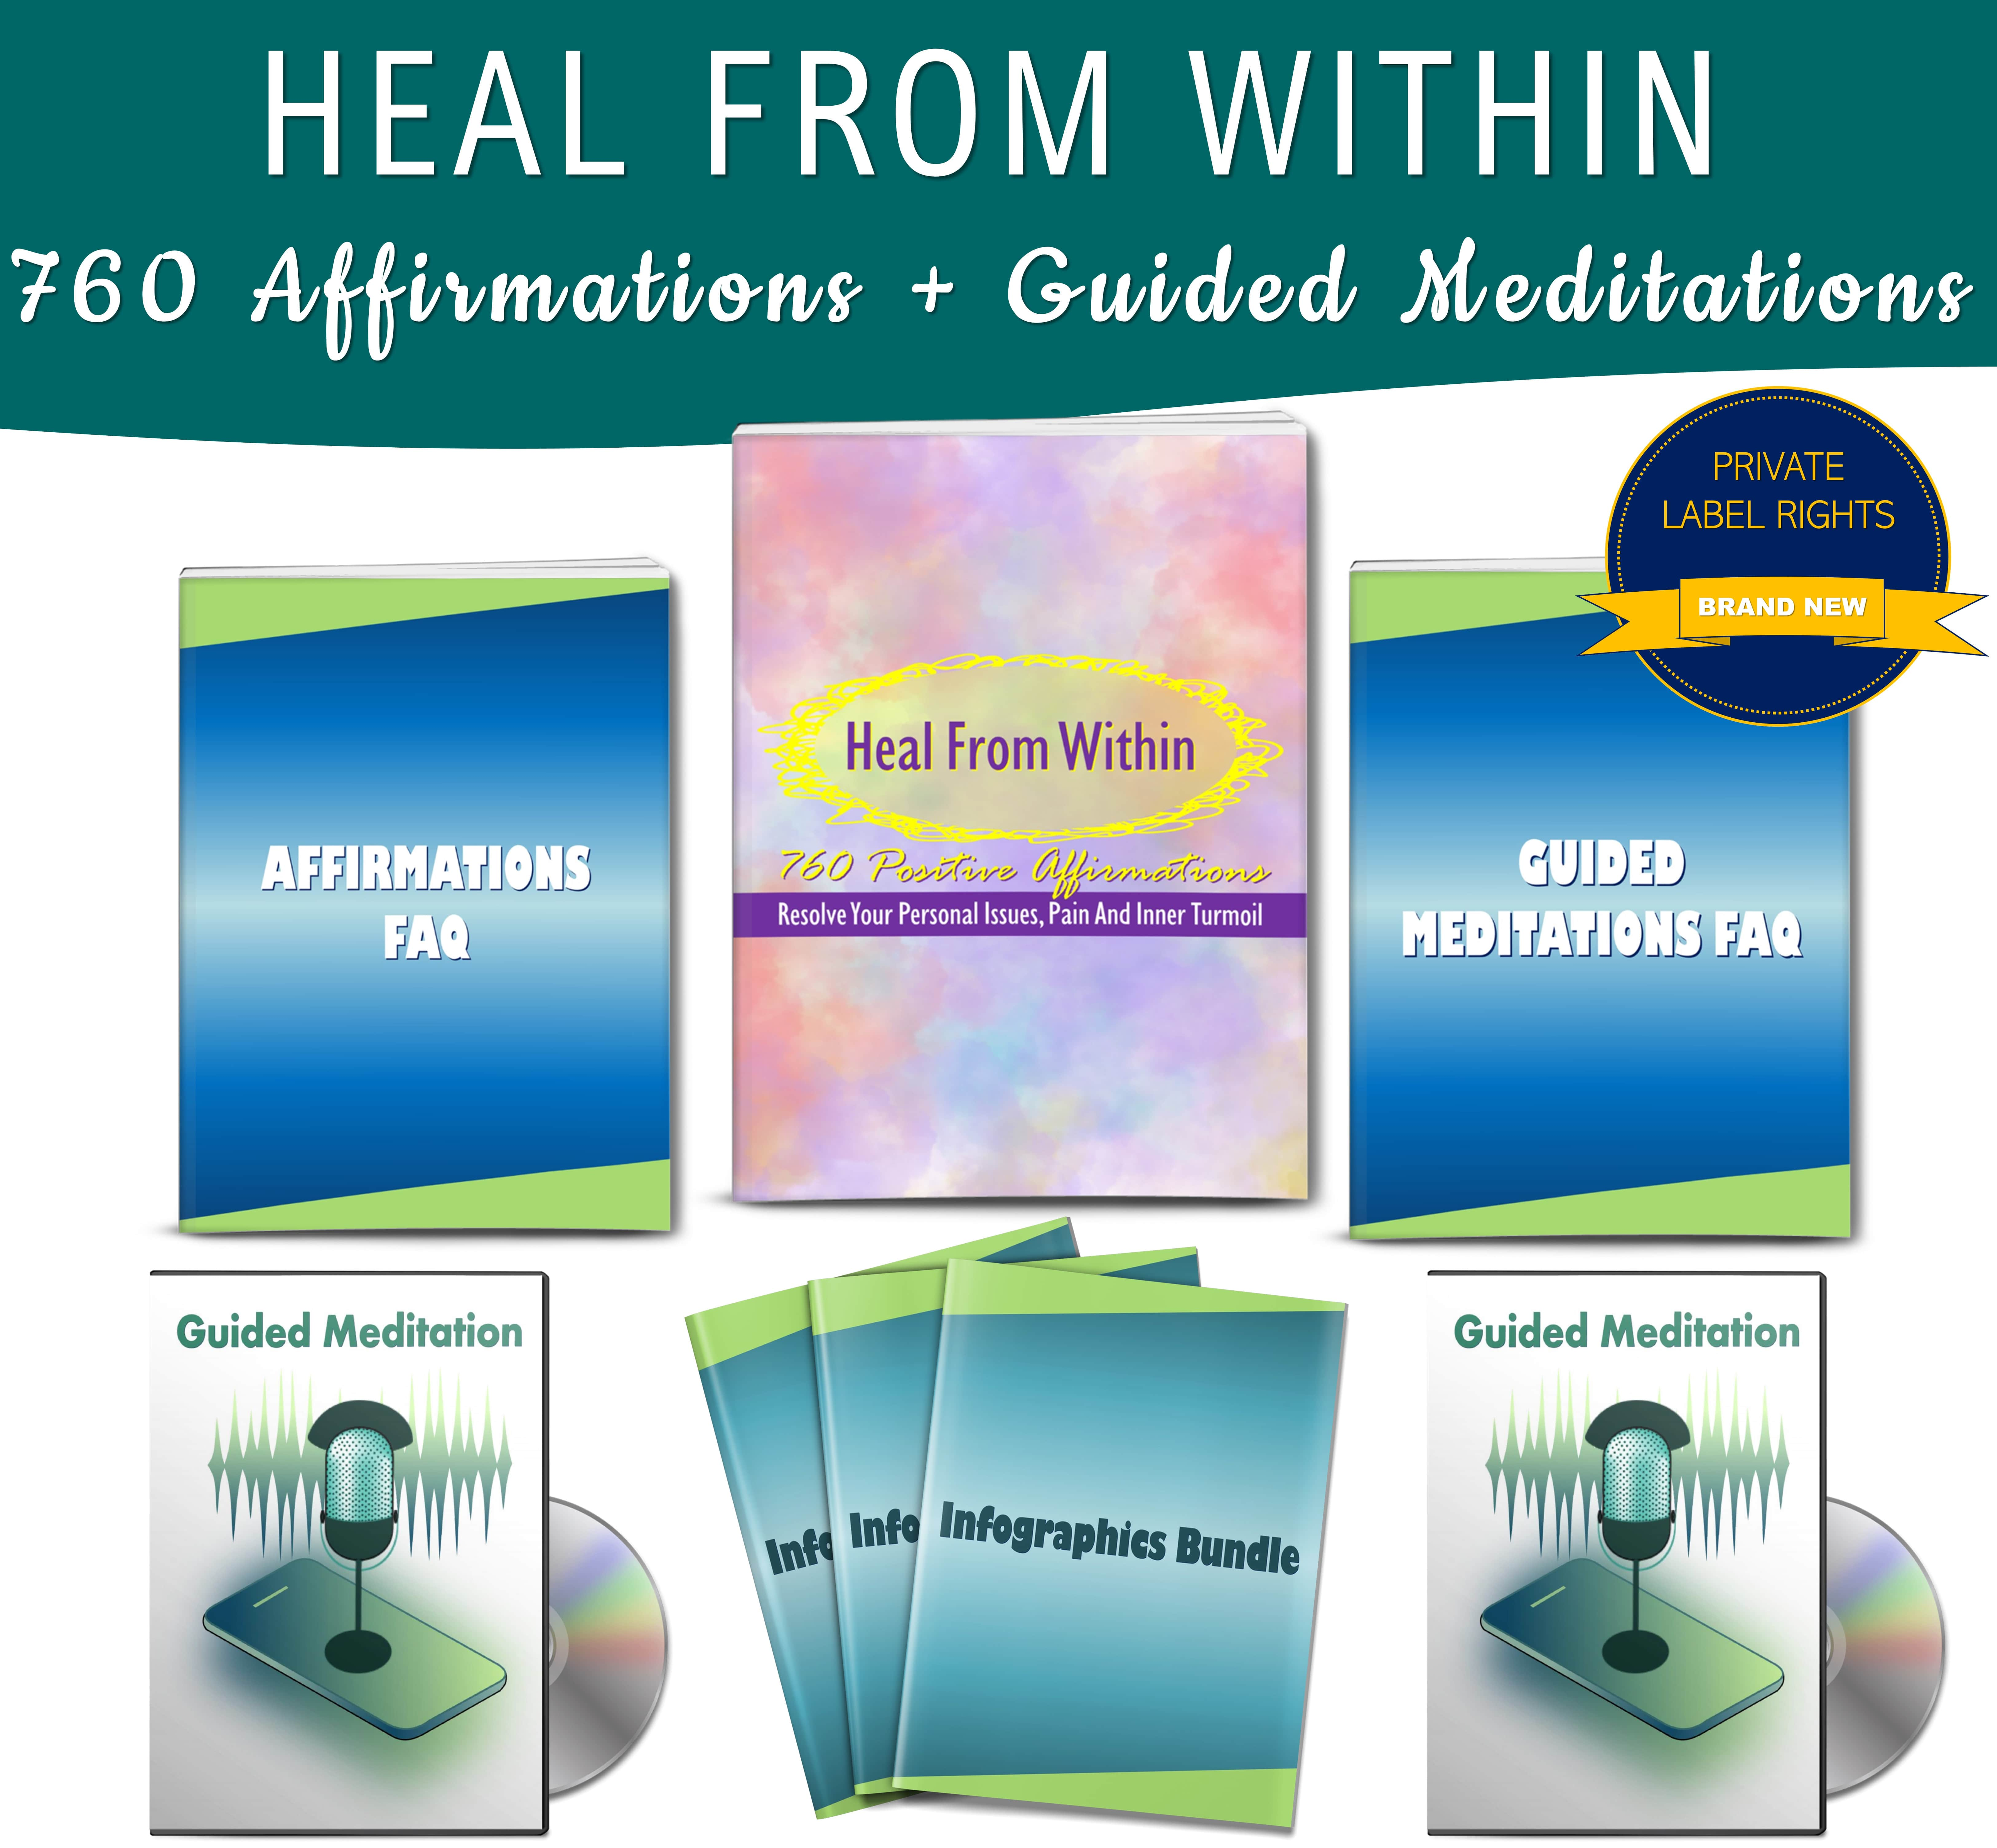 760 Heal From Within Affirmations/Guided Mediation Audios with PLR Rights